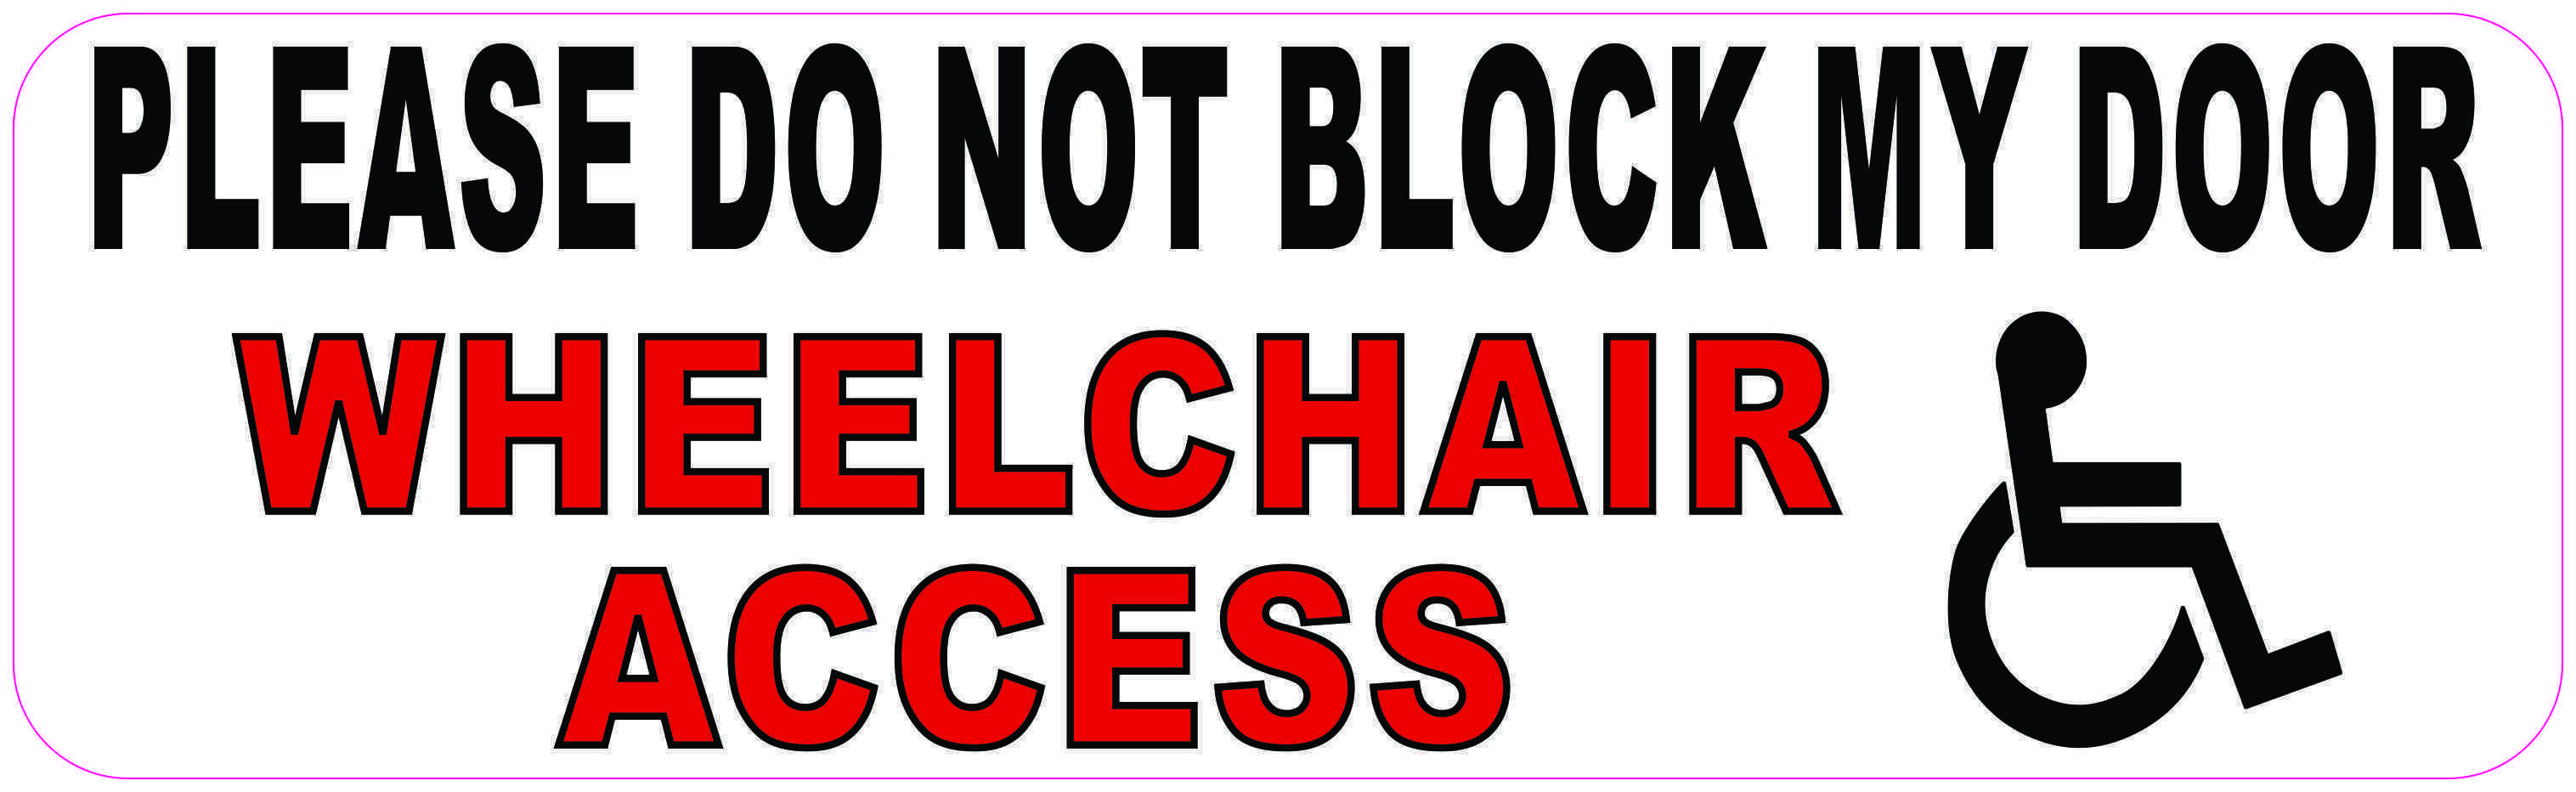 10in X 3in Do Not Block Wheelchair Access Vinyl Sticker Vinyl Sticker Wheelchair Accessible Wheelchair